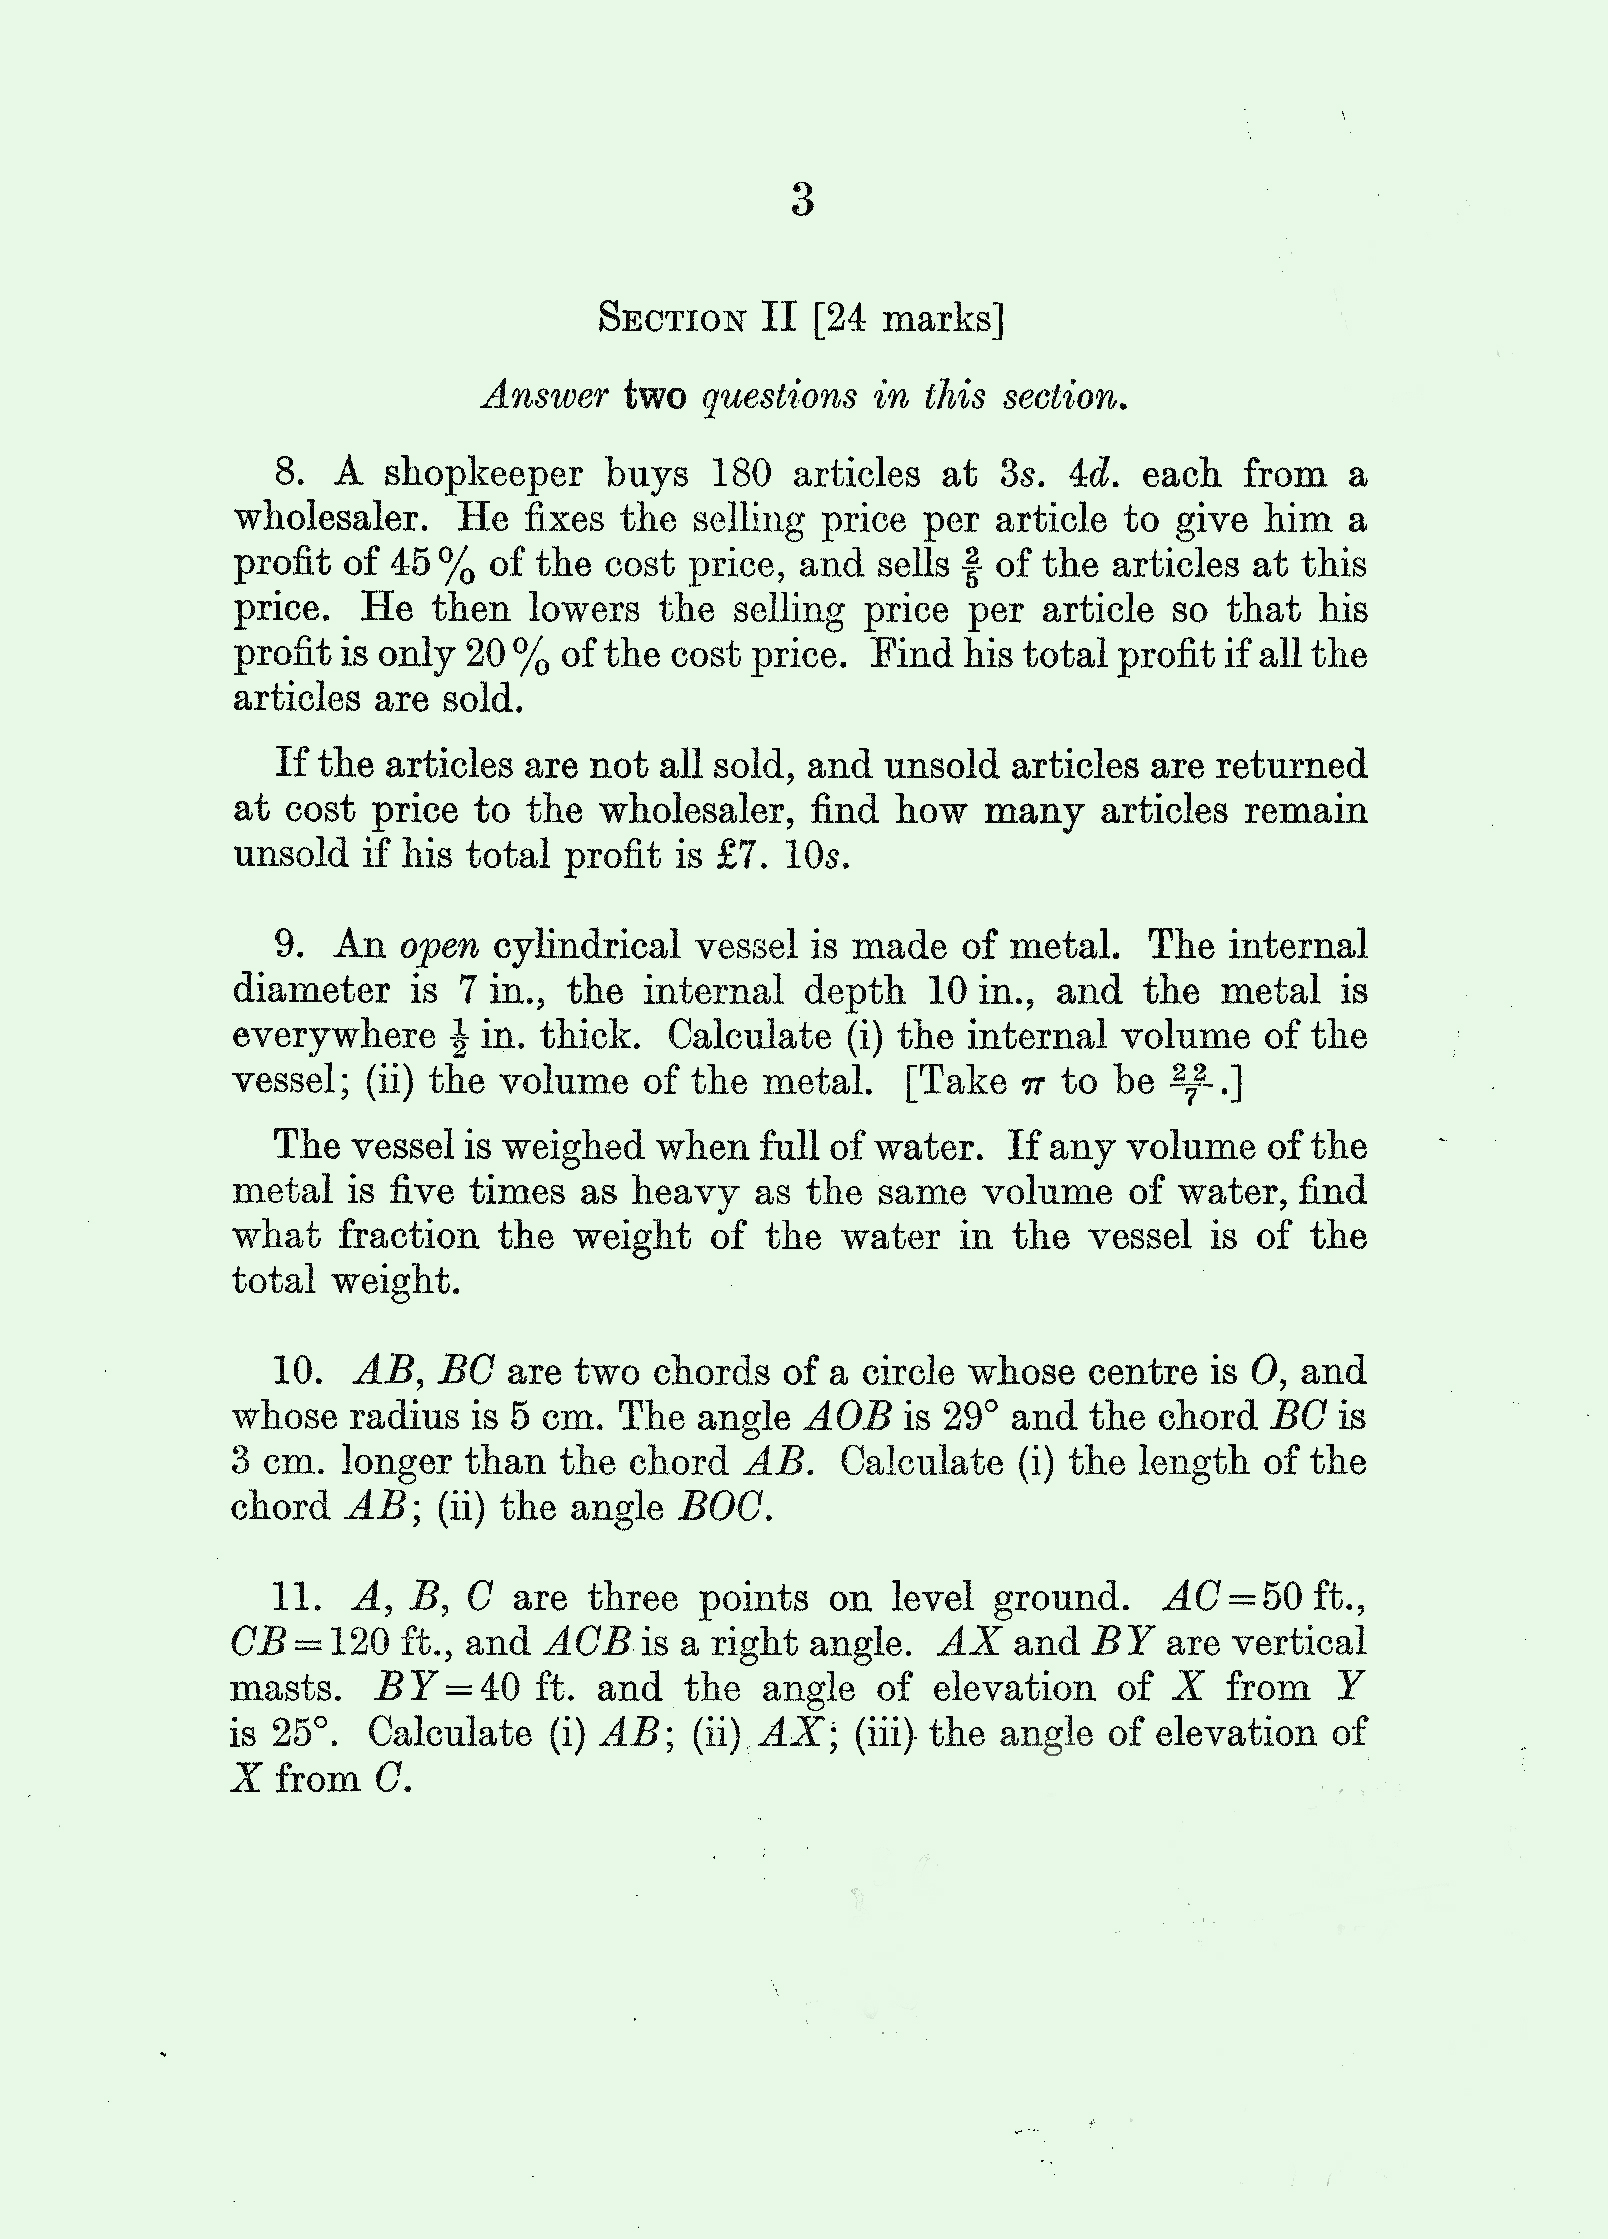 1959 Arithmetic exam page 3